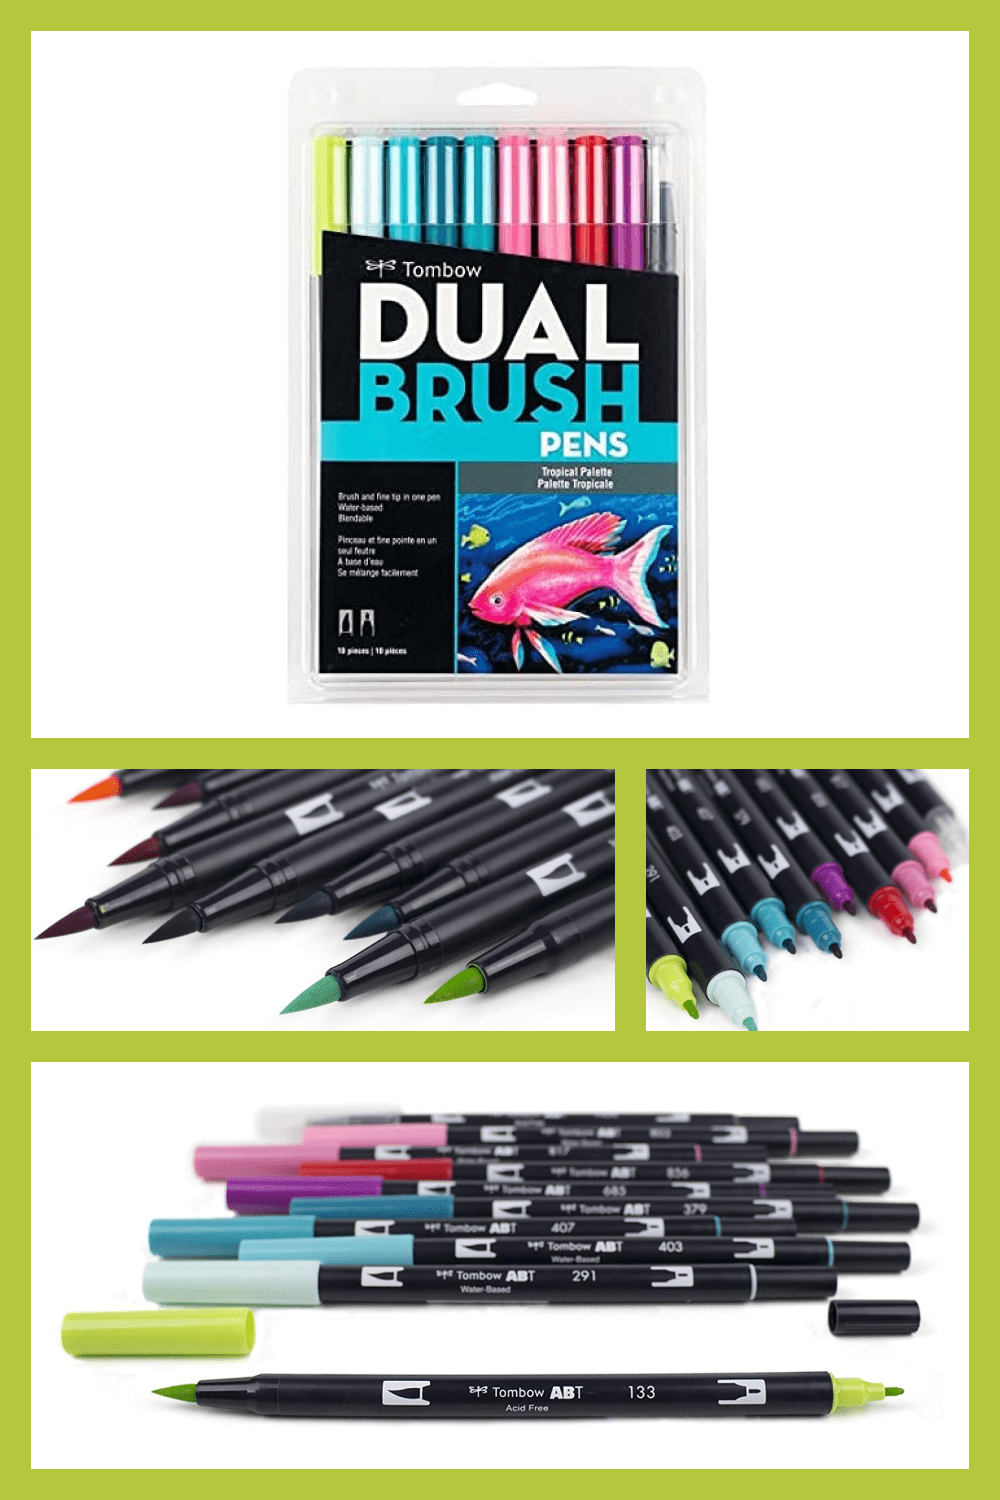 Set of 9 colors with colorless blender pen.